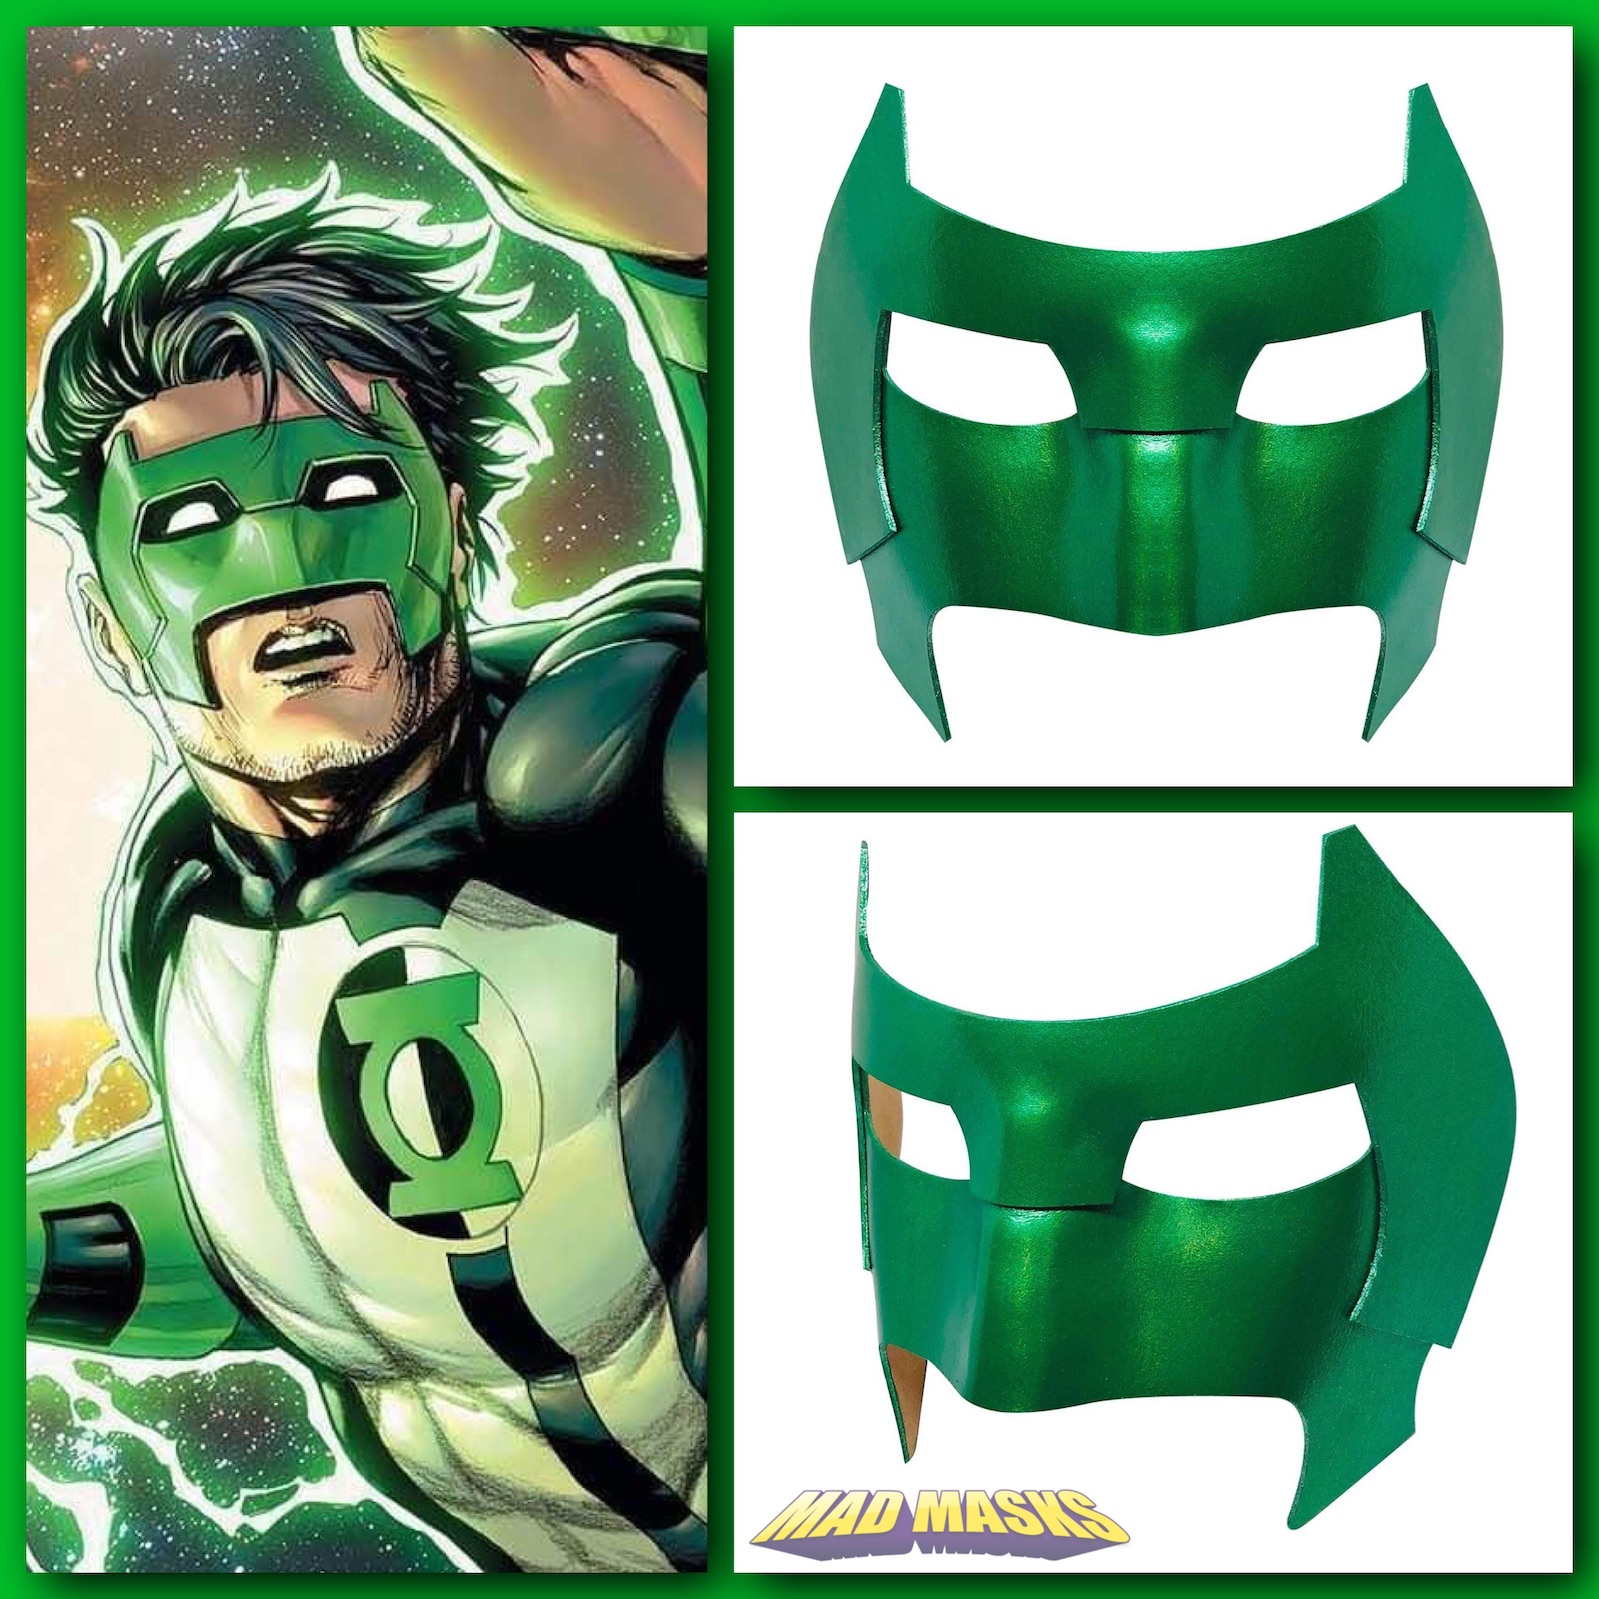 kyle-rayner-green-lantern-mask-mad-masks.jpg